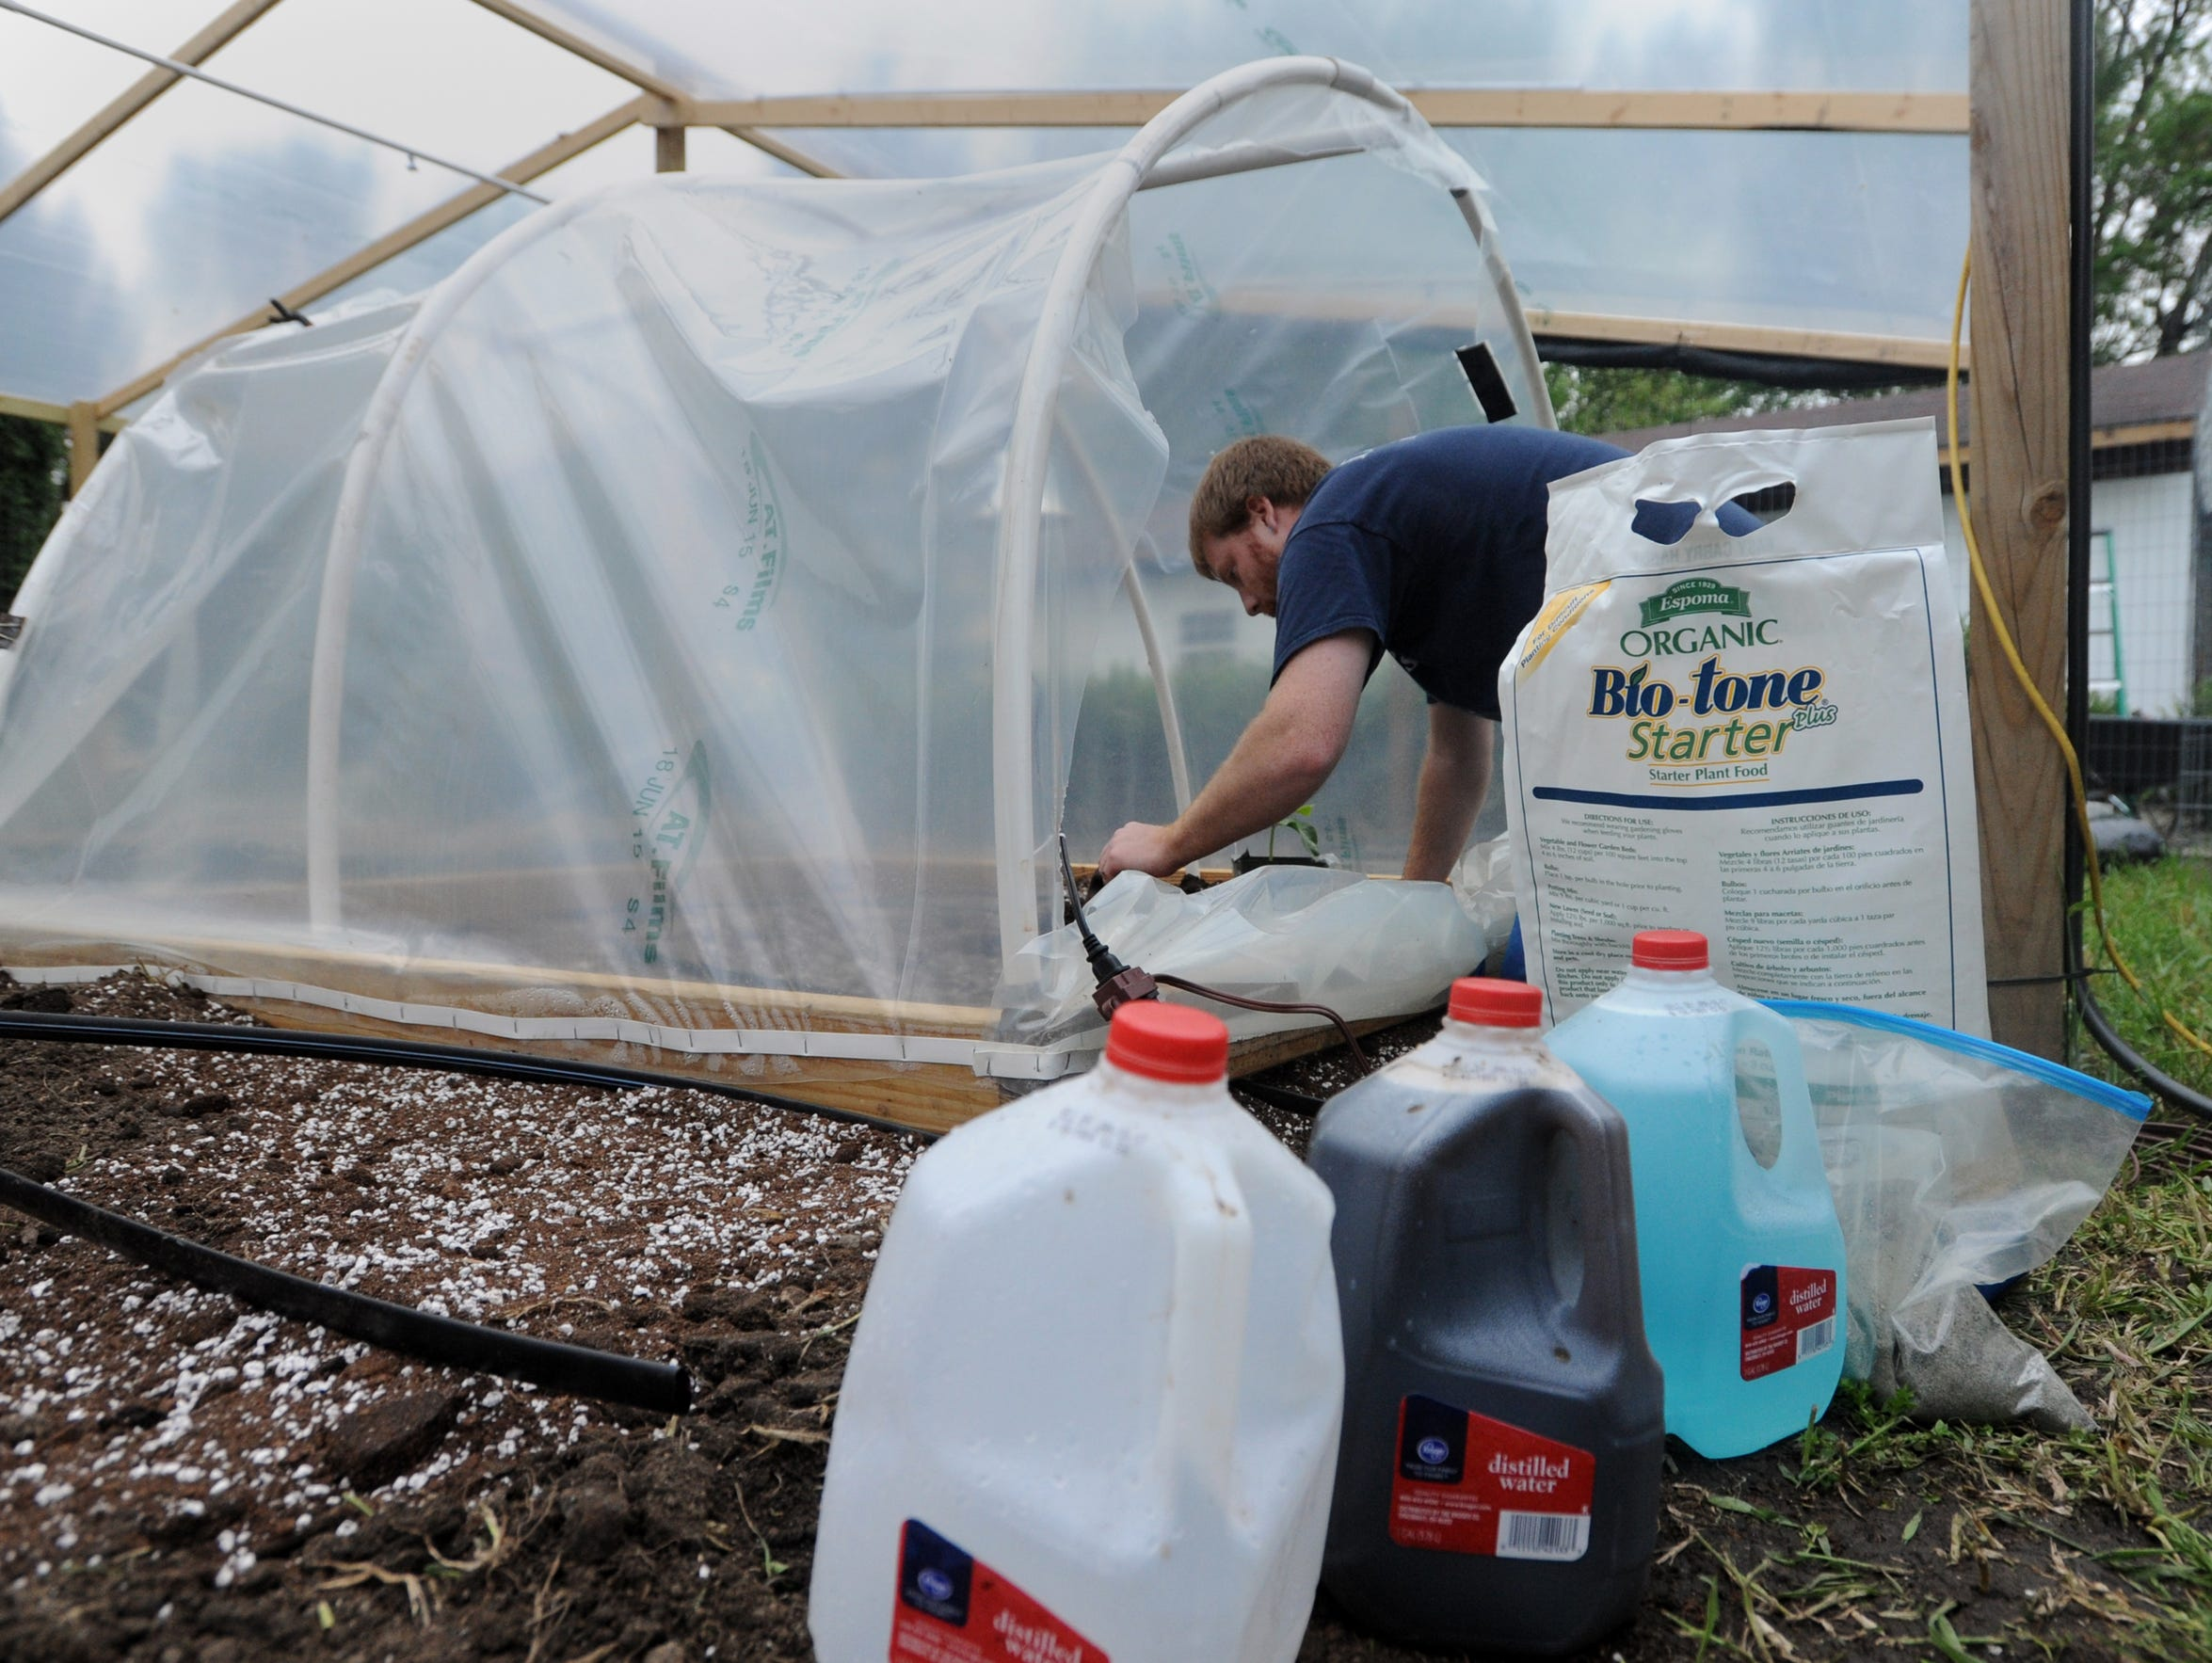 Rusty Ortman uses two gallons of his fertilizer mixtures